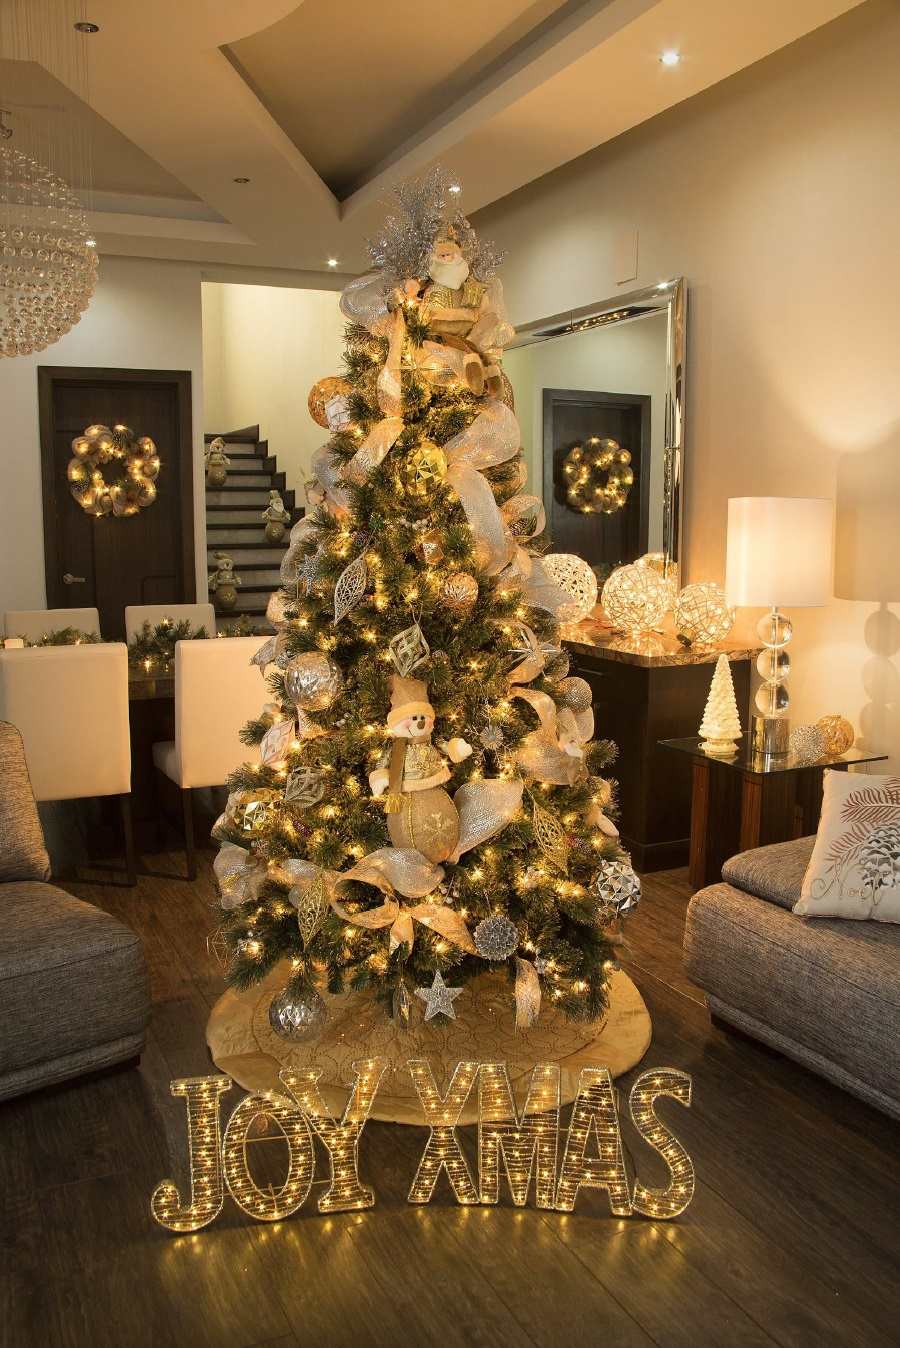 Tendencias para decorar en navidad 2017 2018 - Tendencias decoracion 2018 ...